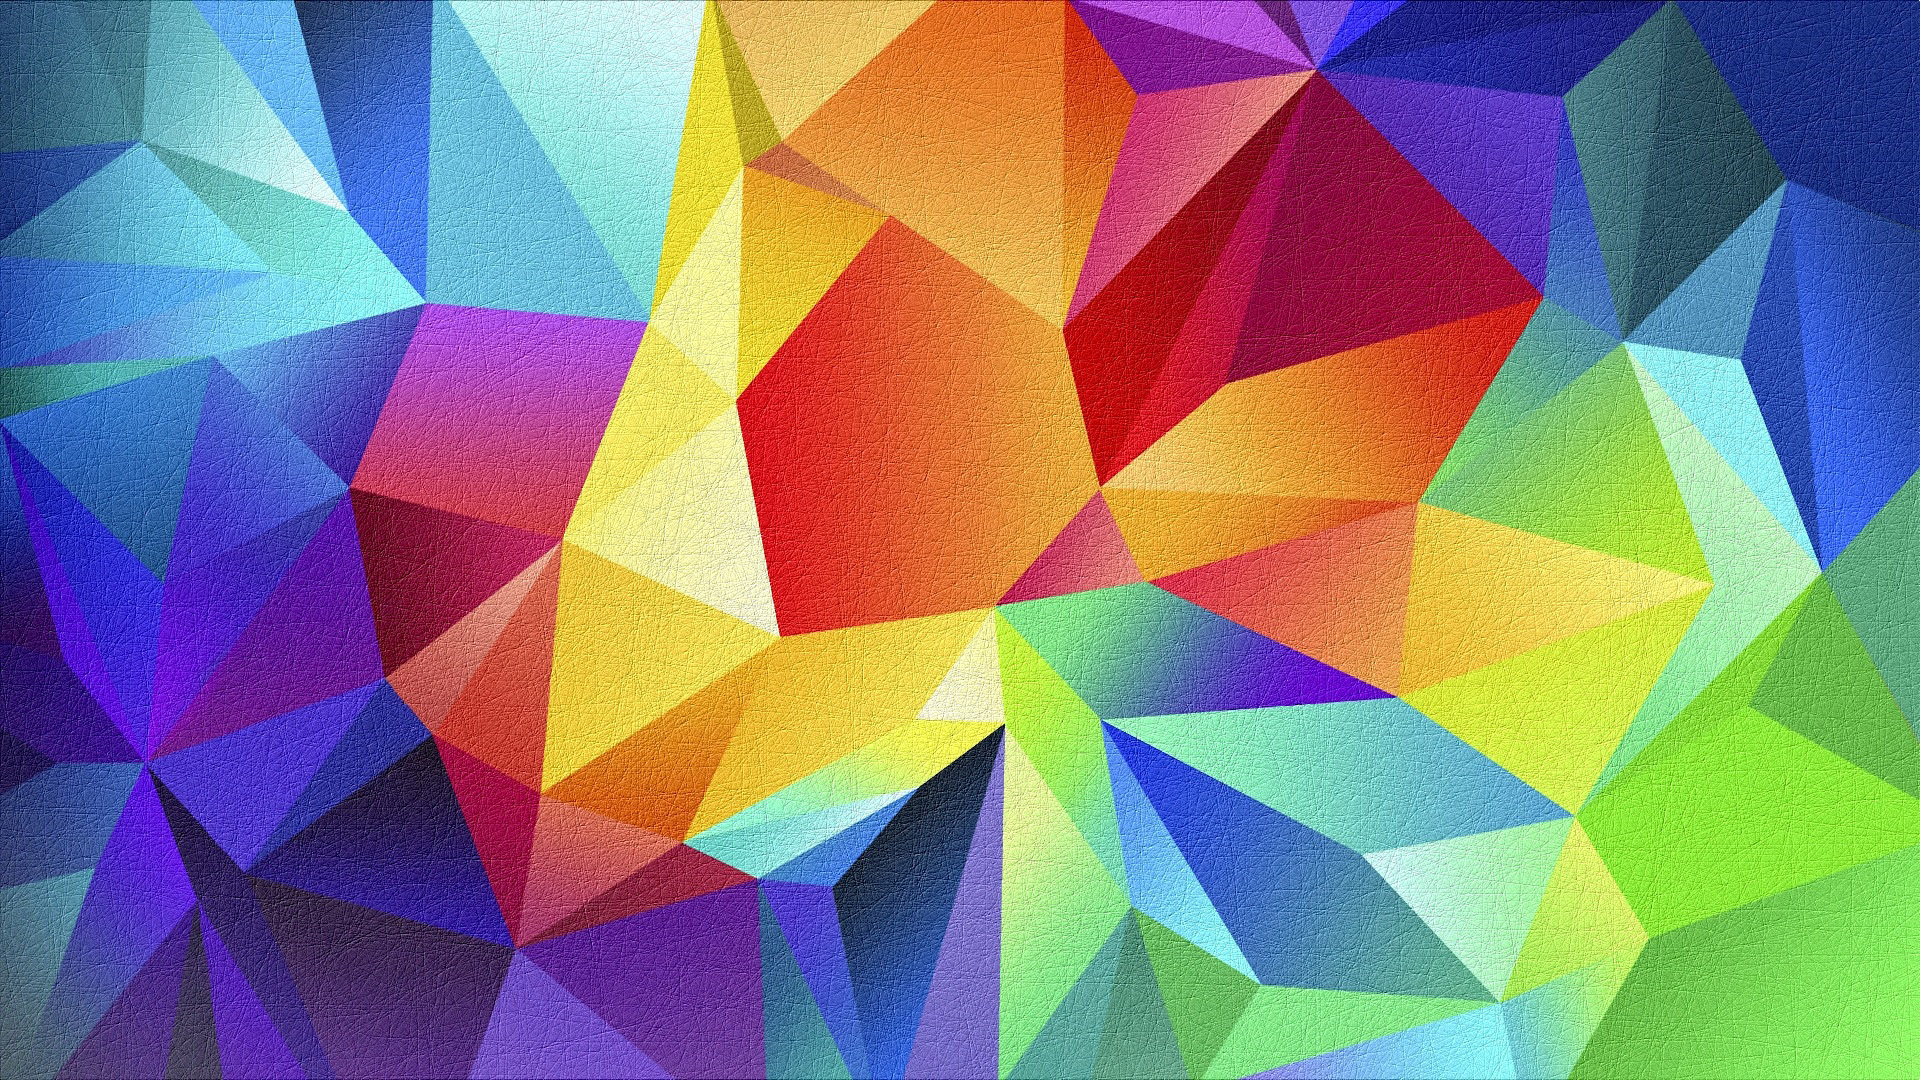 FunMozar Colorful Geometric Wallpapers 1920x1080